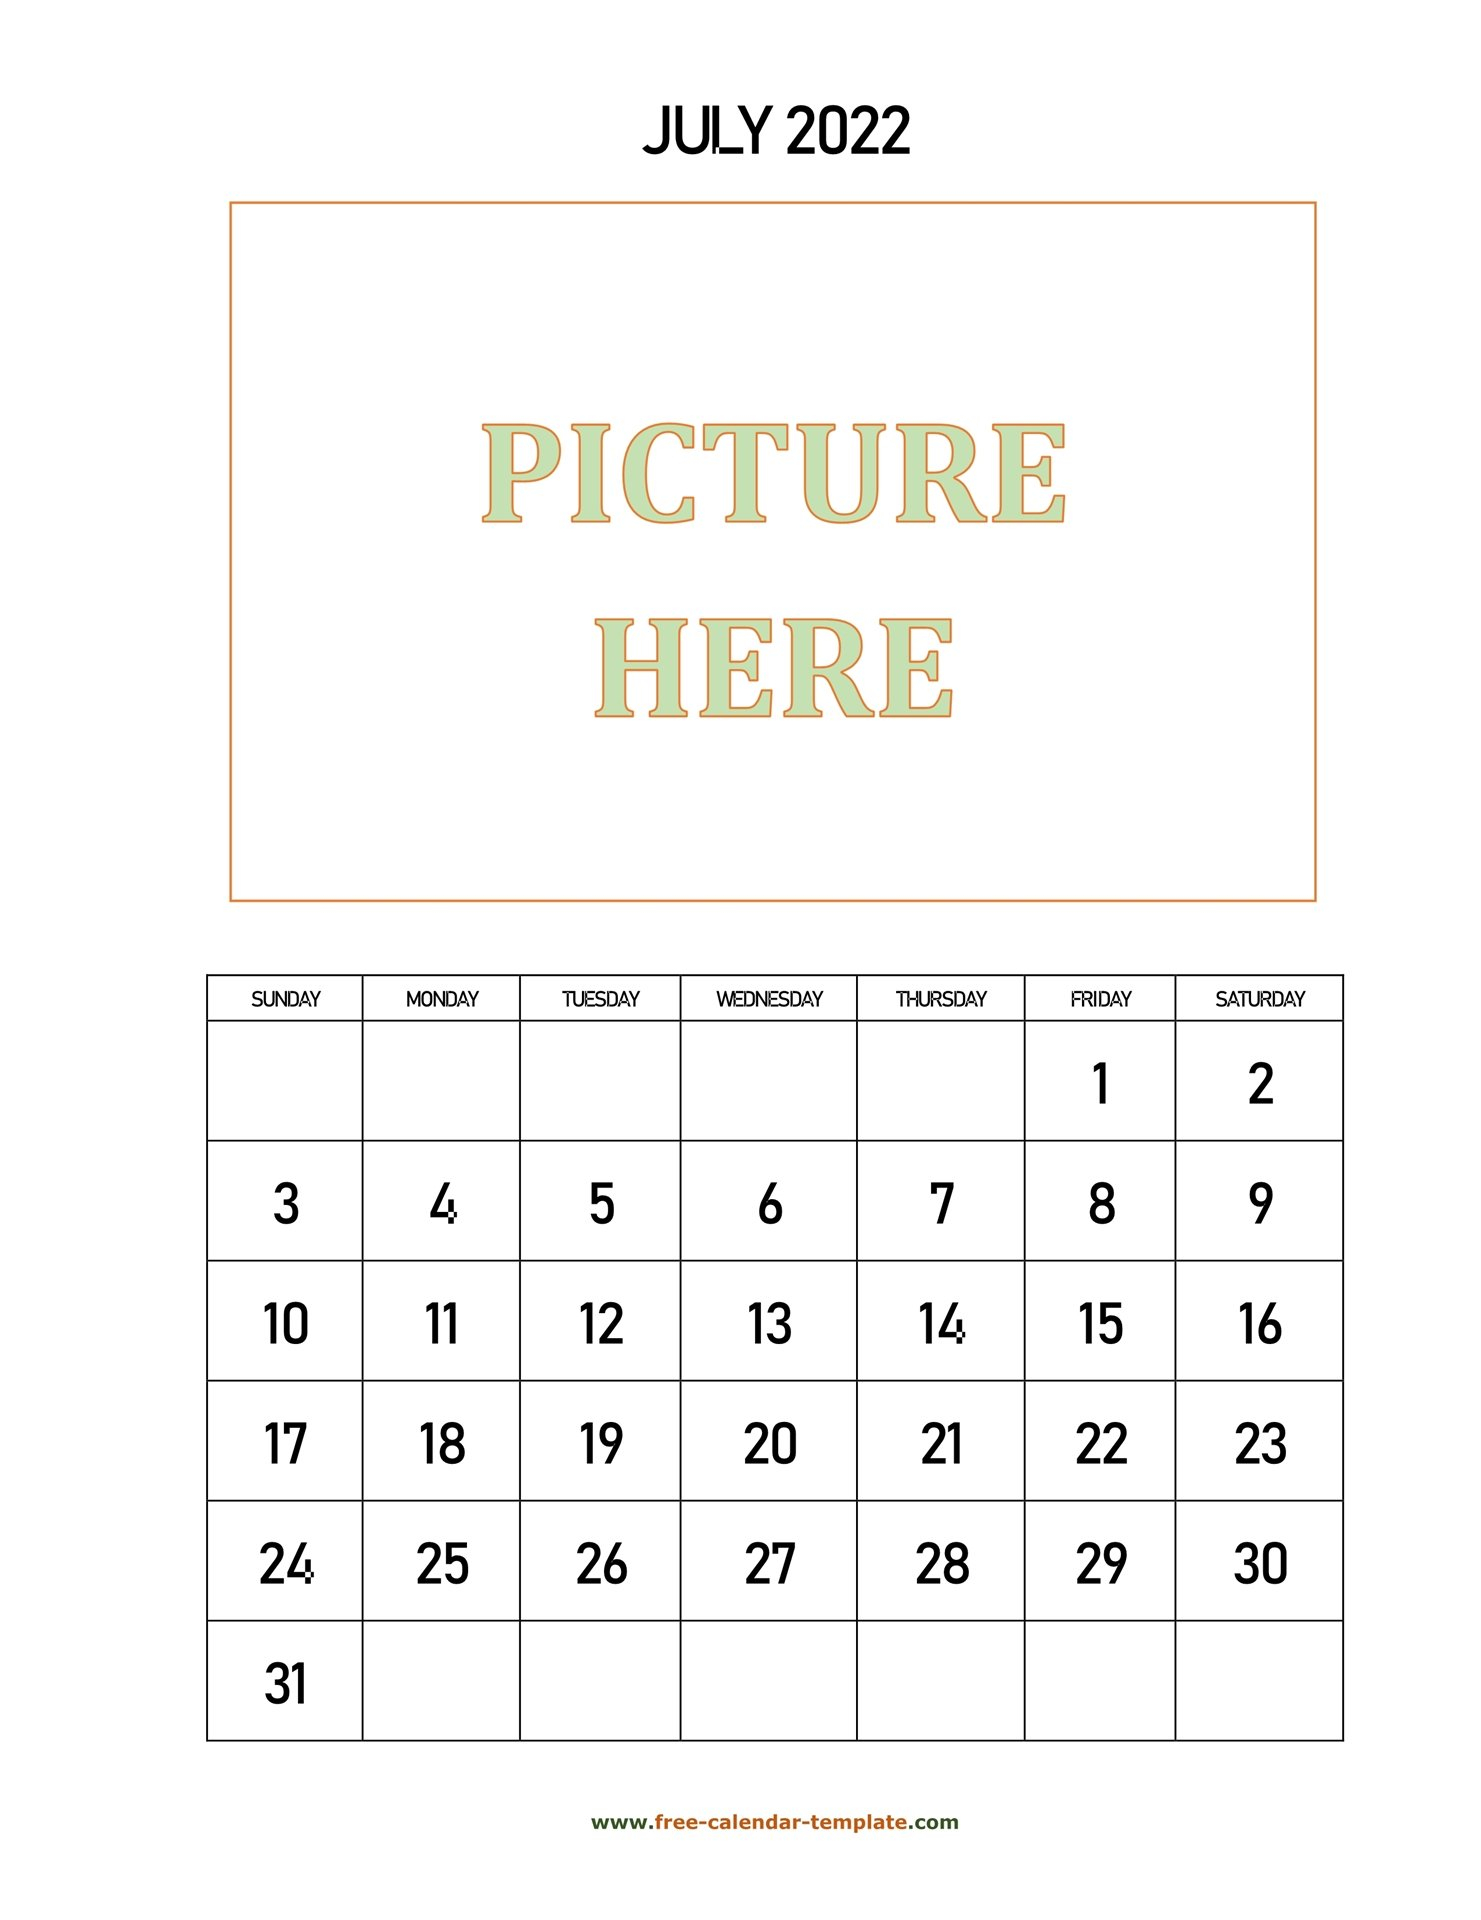 July Printable 2022 Calendar, Space For Add Picture with Print July 2022 Calendar Graphics